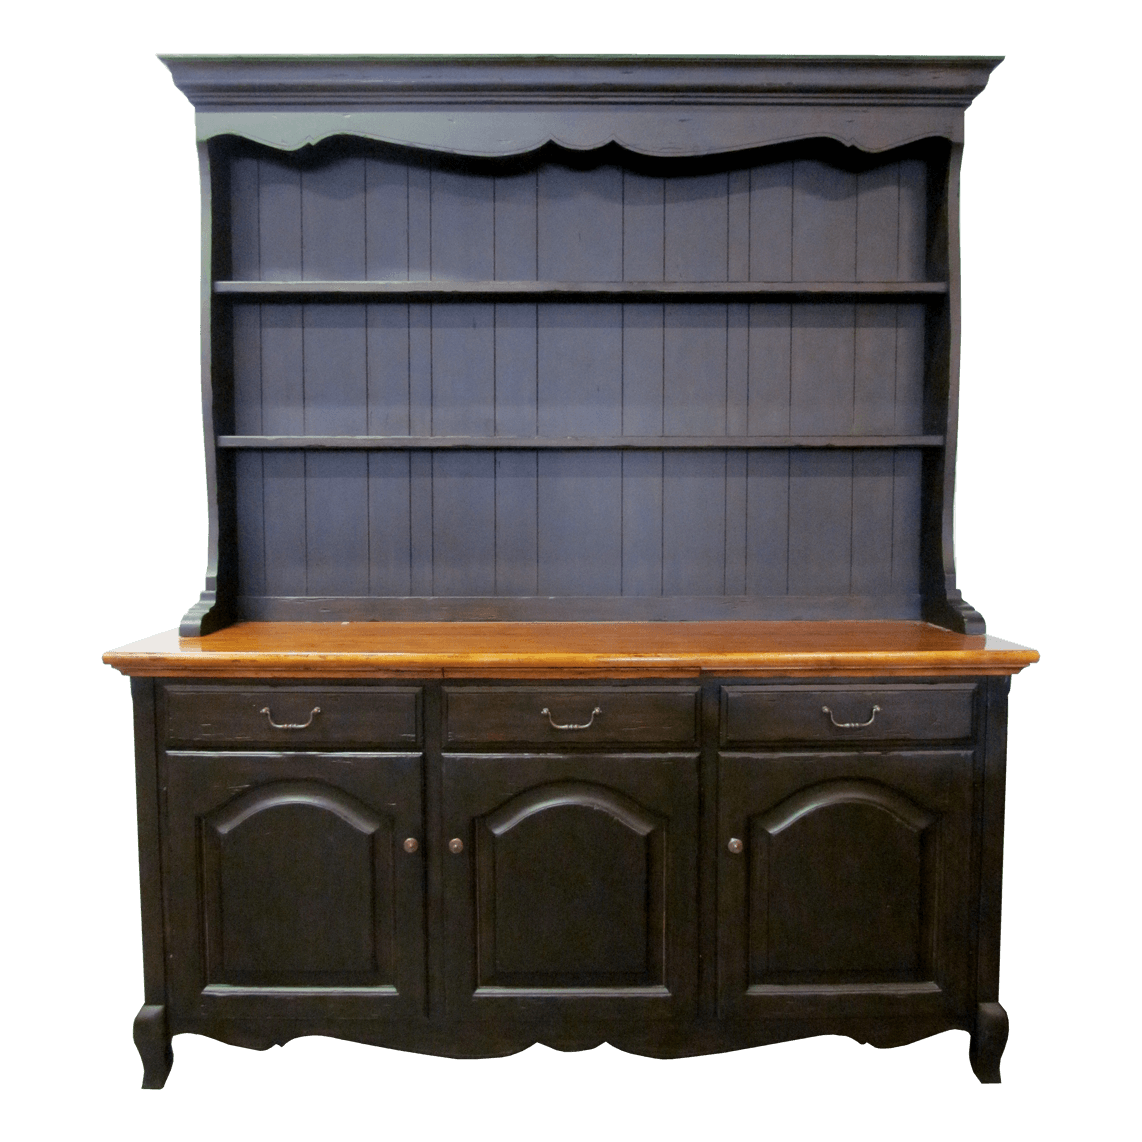 French country china cabinets - Clearance Cabinets Bookcases French Country Sideboard With China Hutch Fremarc Wooden Hutch